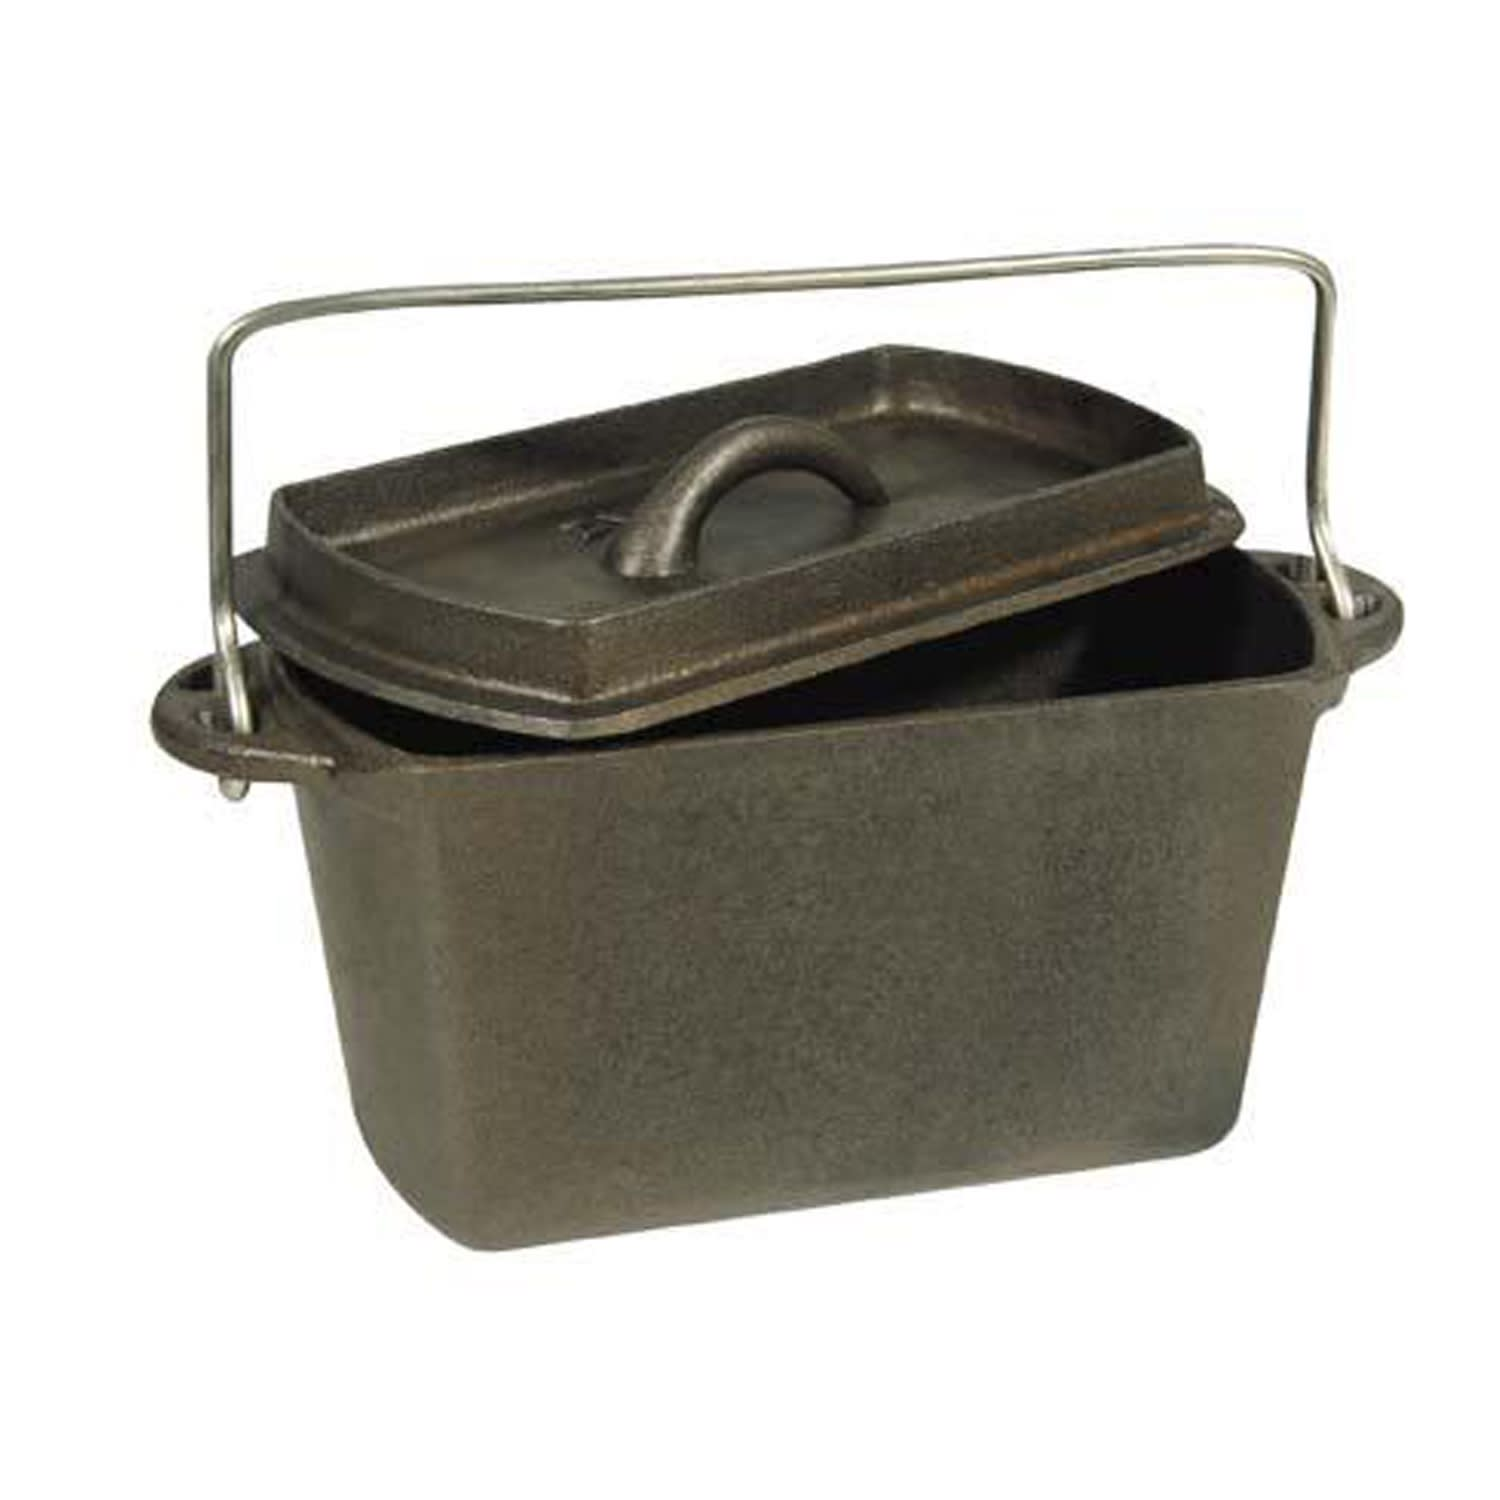 Fireside Cast Iron Bread Pot